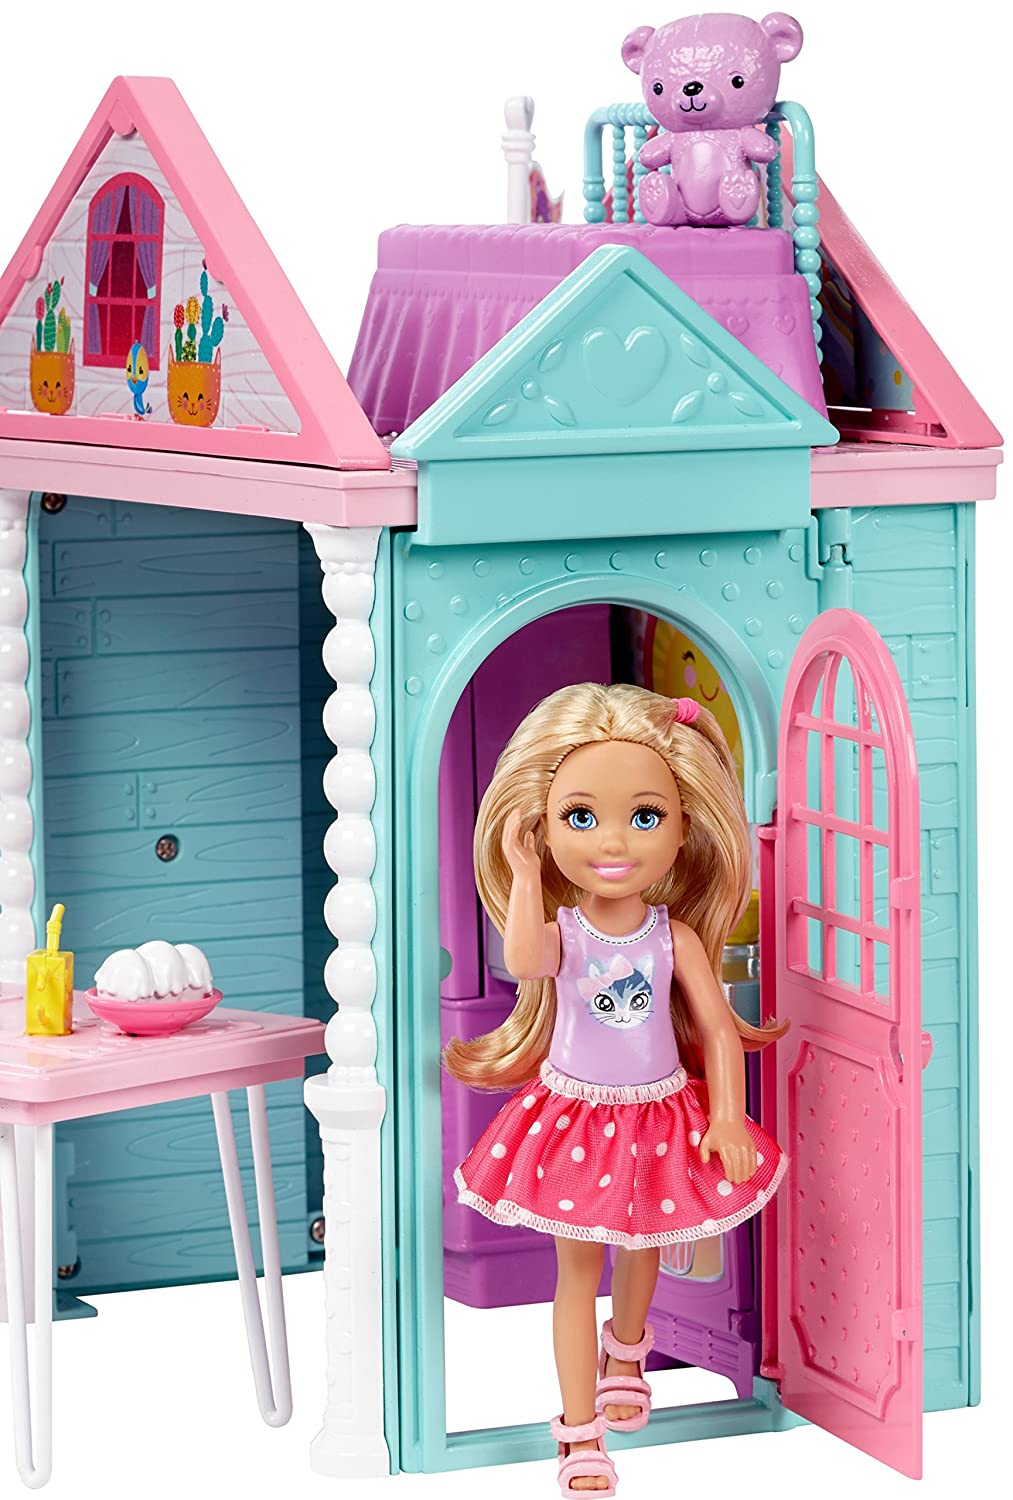 Amazon.com: Barbie Club Chelsea Playhouse Playset: Toys & Games